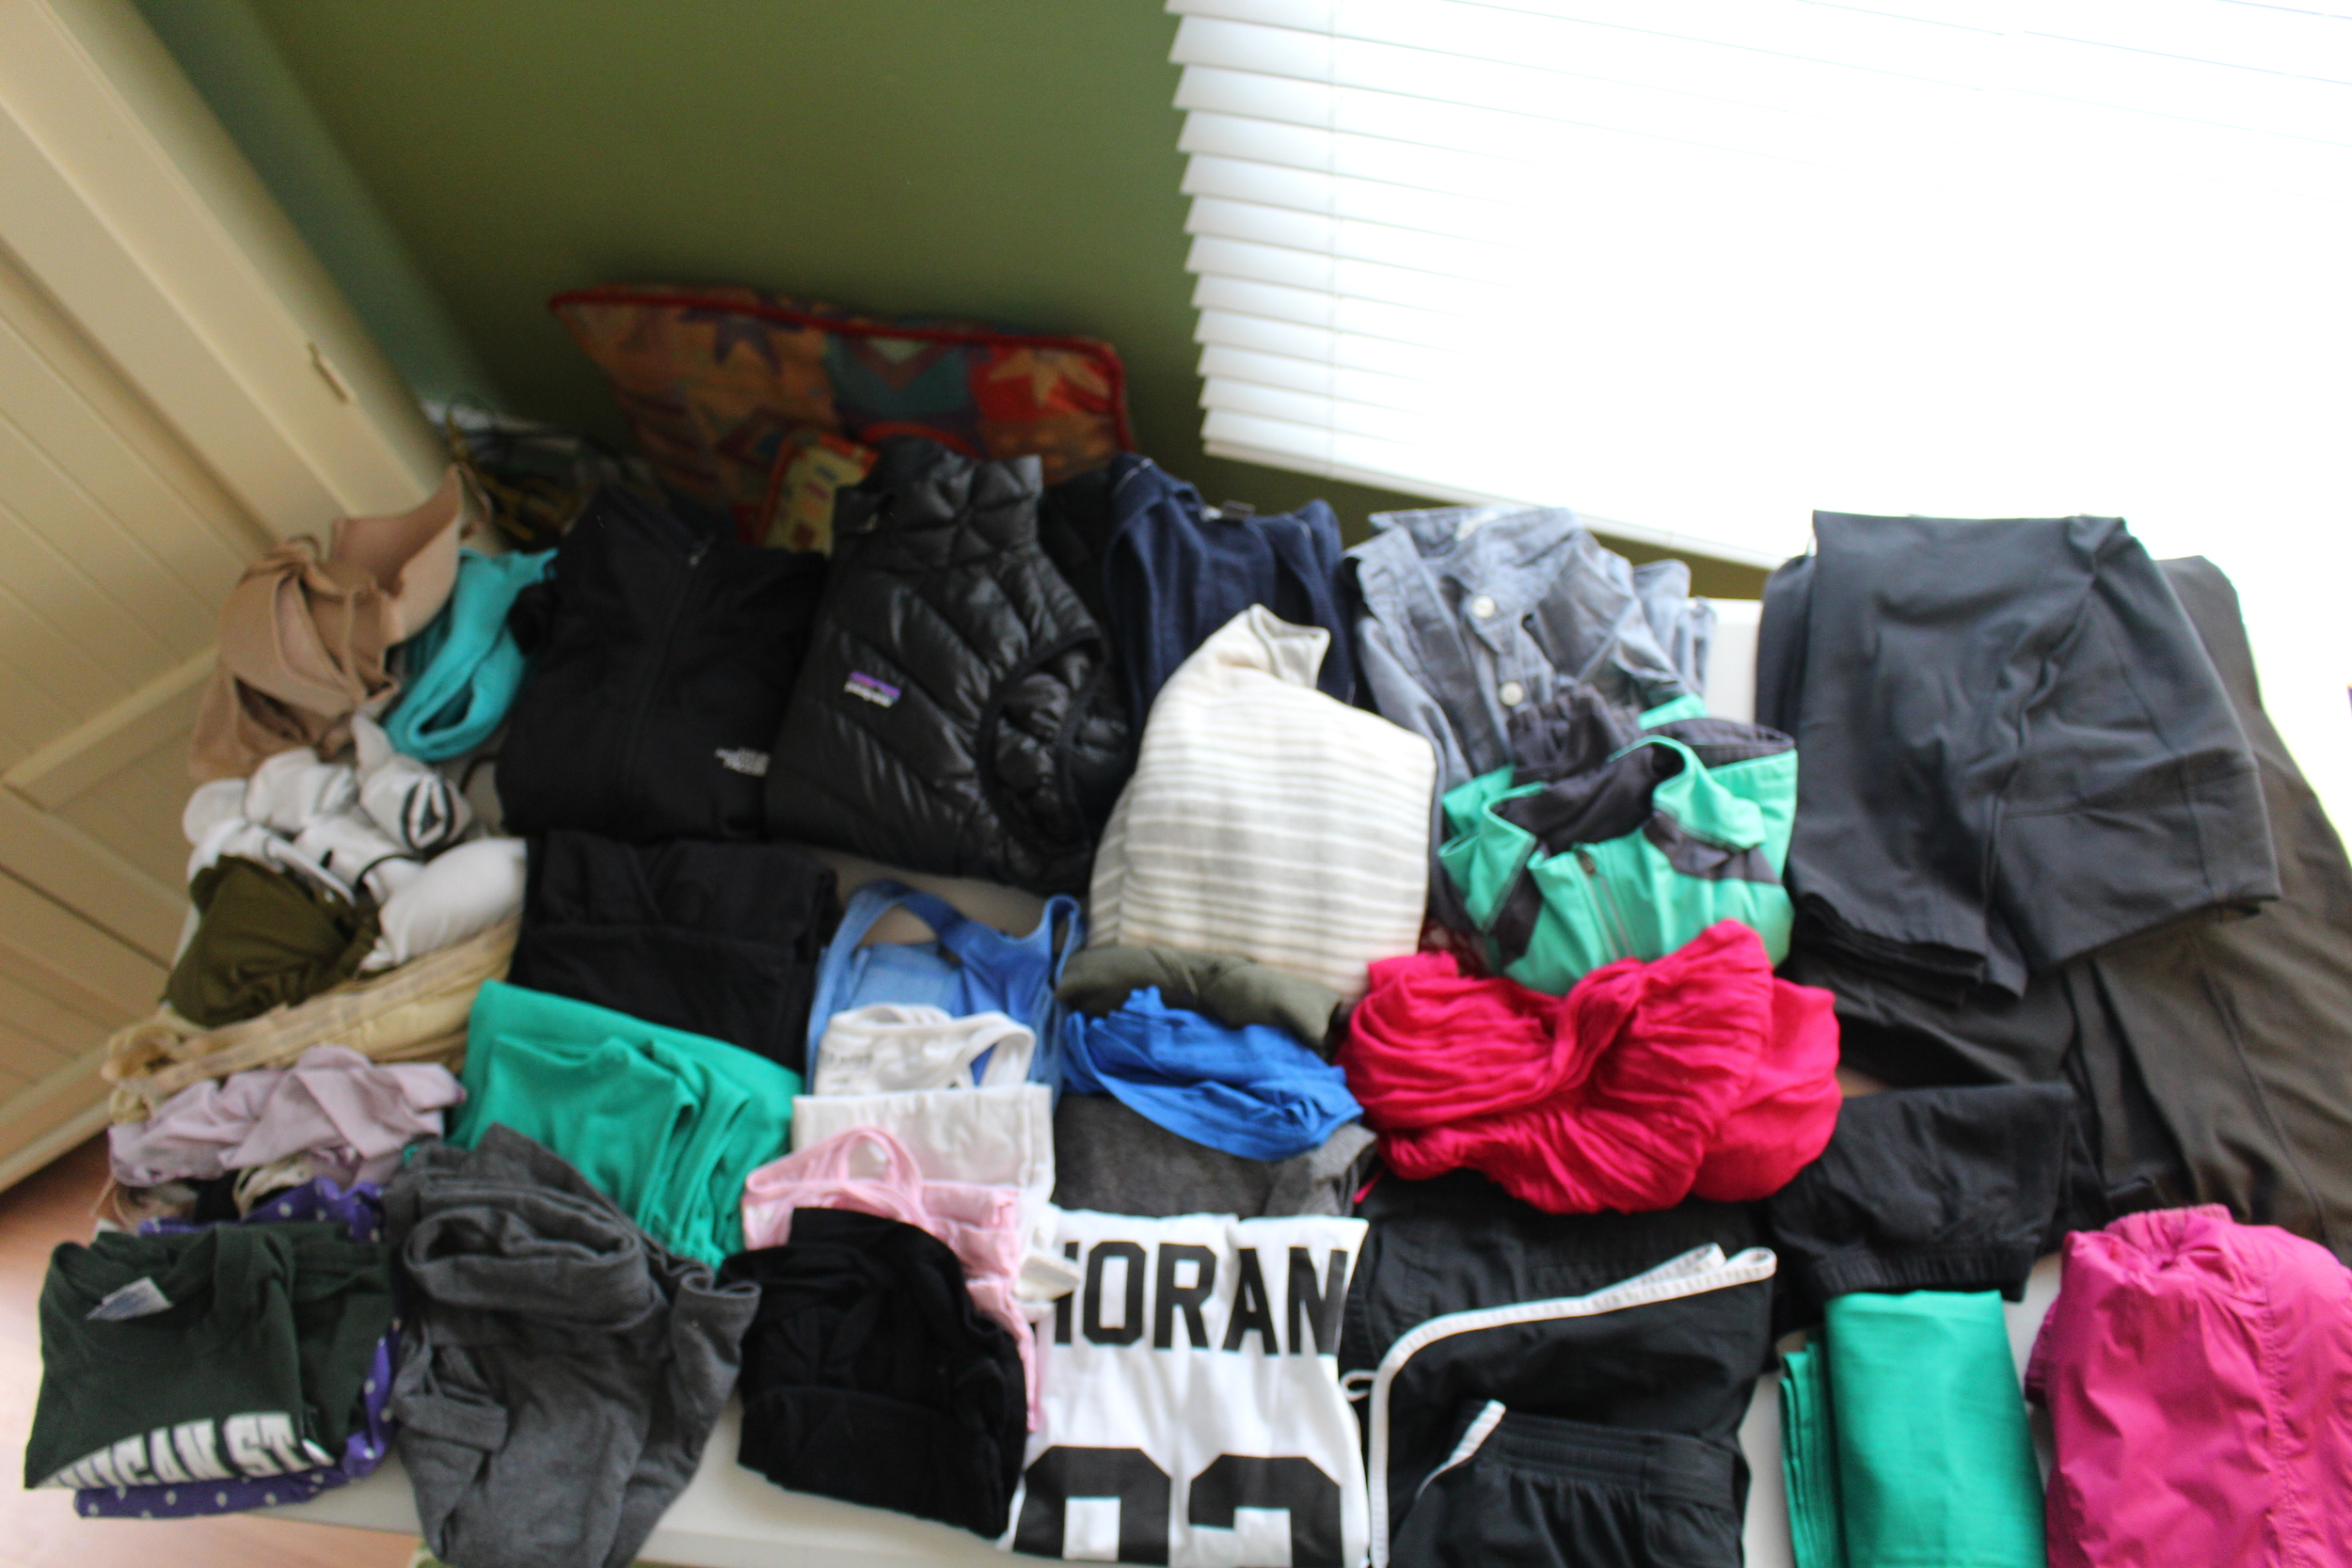 """Necessities:               Dresses/Skirts:                   Tops:                            Bottoms:  7 Pairs of Underwear        Black 3/4 Sleeve Patagonia Dress    4 Tanks: Blue, White, Pink, Black      Black JCrew Shorts 3 Bras                    Green Kavu """"Eve"""" Dress            3 V-necks: Green, Blue, Grey         Black Under Armour Shorts 4 Pairs of Socks           Grey Old Navy Knee Length Skirt    MSU t-shirt (PJs)                    Black Nike Cropped Leggings 1 Bathing Suit                                              One Direction Shirt!                Black Nike Cropped Pants Boxer Shorts (PJs)                                          Black Long Sleeve North Face 1/4 Zip  Black Eddie Bauer Active Pants                                                          NavyLong Sleeve Cardigan         Black Eddie Bauer Active Leggings                                                          Striped Eddie Bauer Sweater         Black Old Navy Leggings                                                        Denim Shirt    Outerwear:                            Accessories:             Shoes: (not pictured)            Toiletries:  Pink North Face Raincoat               MSU Flag               Black Nike Frees                Shampoo/Conditioner/Body Wash Green/Grey LLBean Running Jacket      Pink Scarf               Grey/Black Merrell Sandals        Toothpaste/Toothbrush/Mouthwash Black Patagonia Down Vest             Pepper Spray           Cheap Black Flats               Deodorant                                     Knife                                                 Quick Dry Towel/Wash Cloth                                    Metal Spork                                     Umbrella                                     Selfie Stick (it was a gift!)                                     Detergent/Clothes Line                                     Power Strip"""